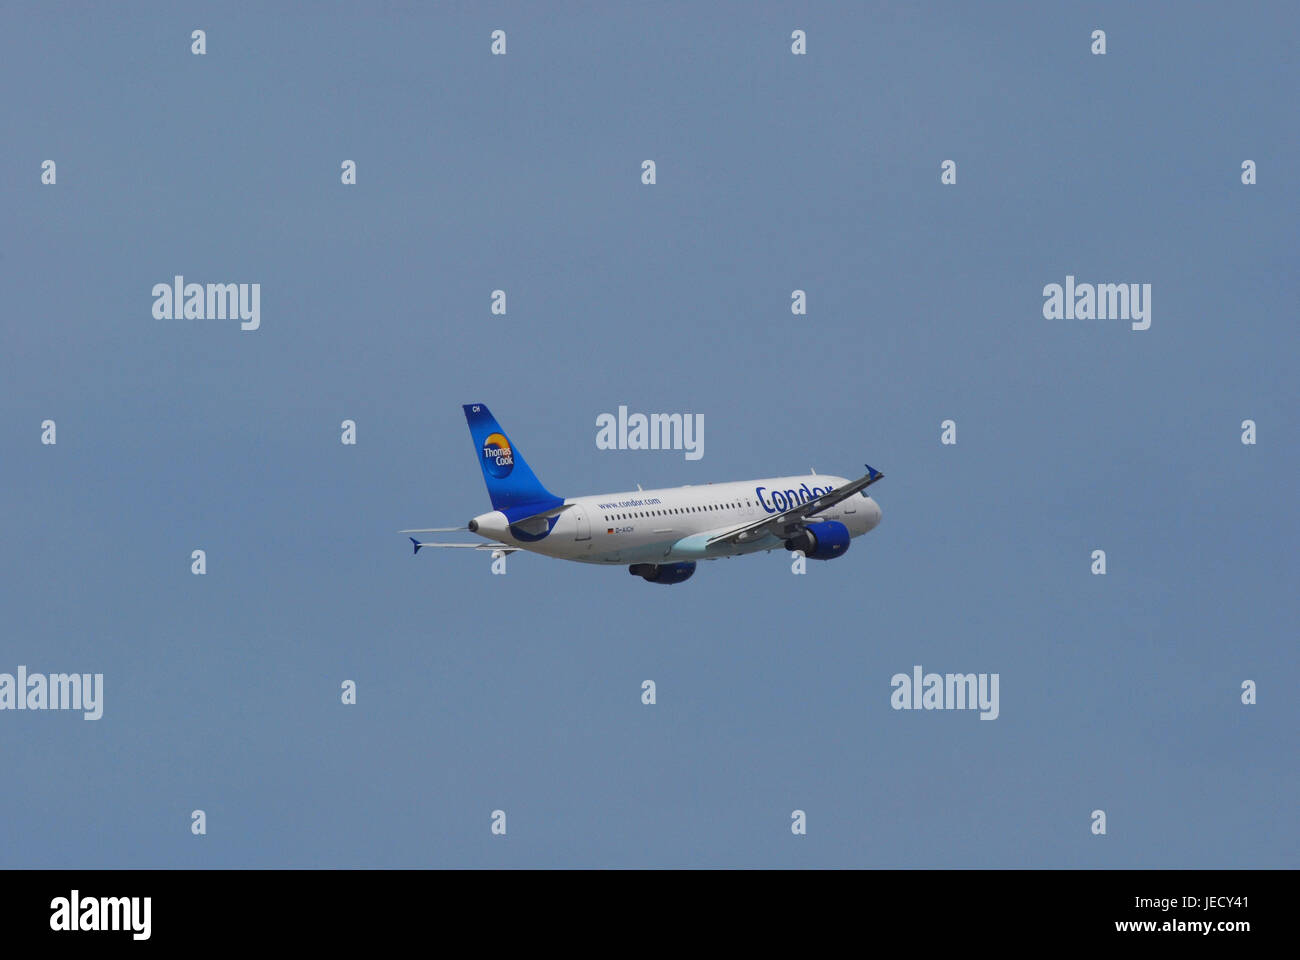 Air liner, airbus A320, flight, no property release, civil aviation, airplane, traffic airplane, standard body airplane, - Stock Image